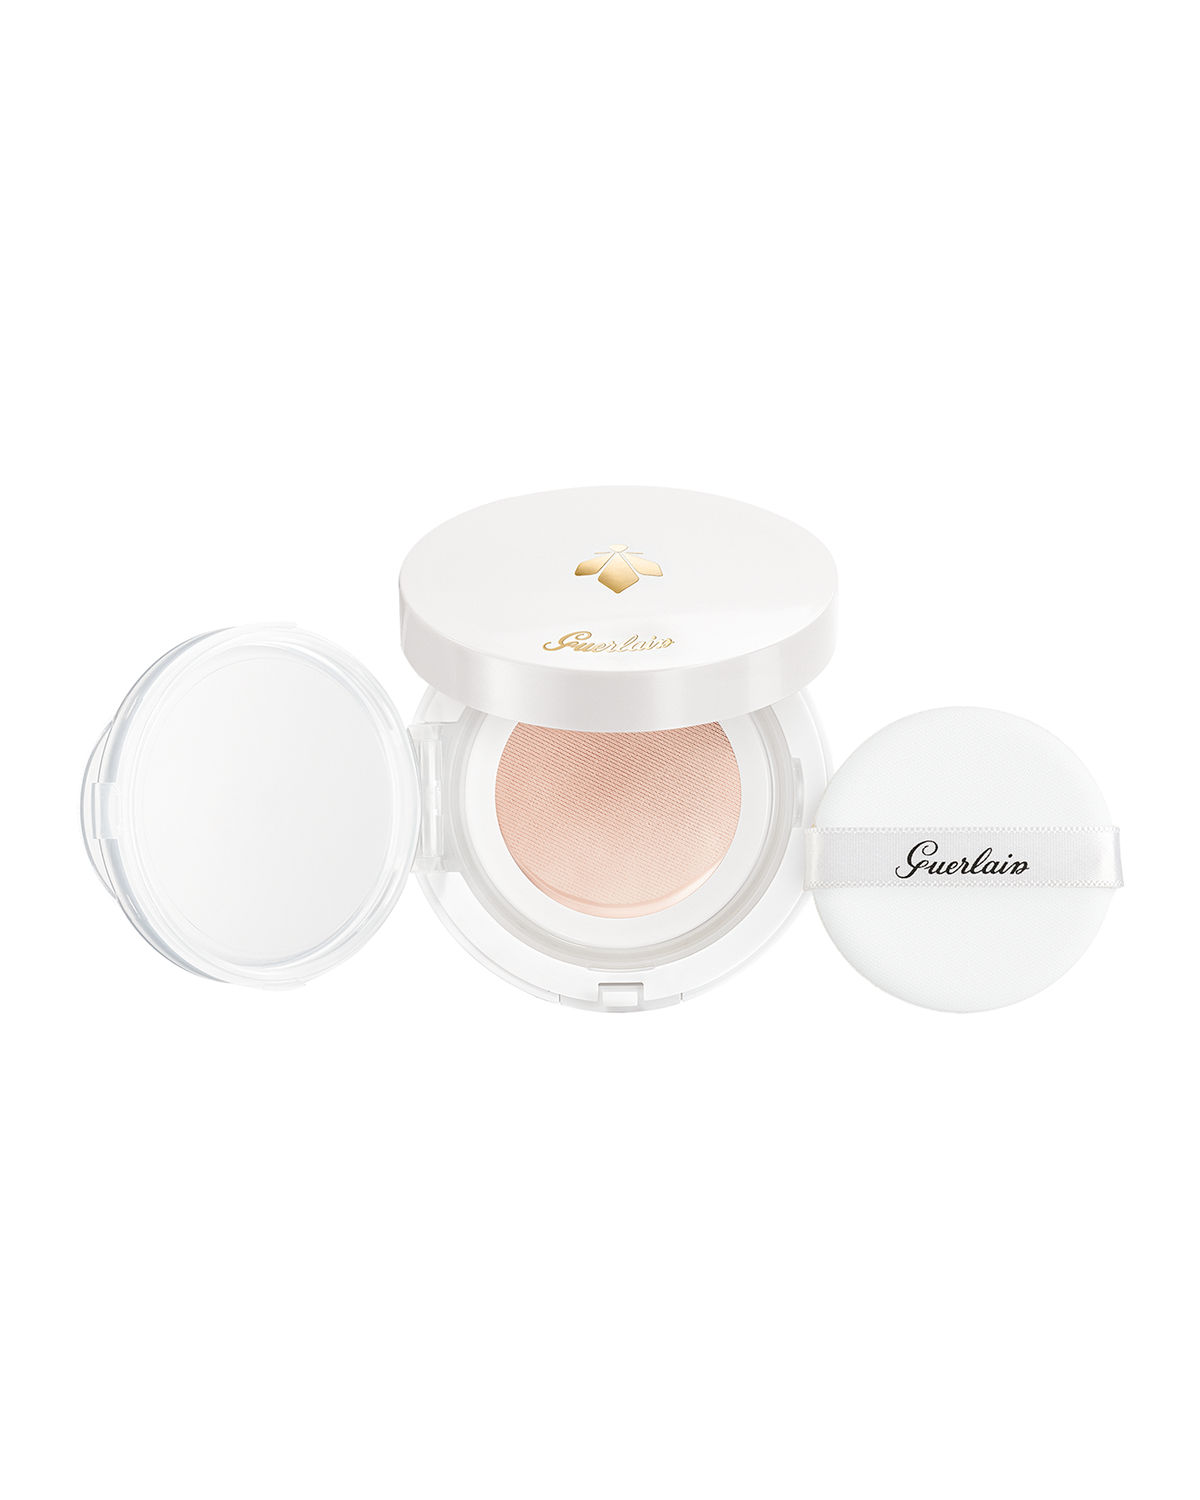 Abeille Royale Bee Glow Cushion, 0.4 oz./ 12 mL